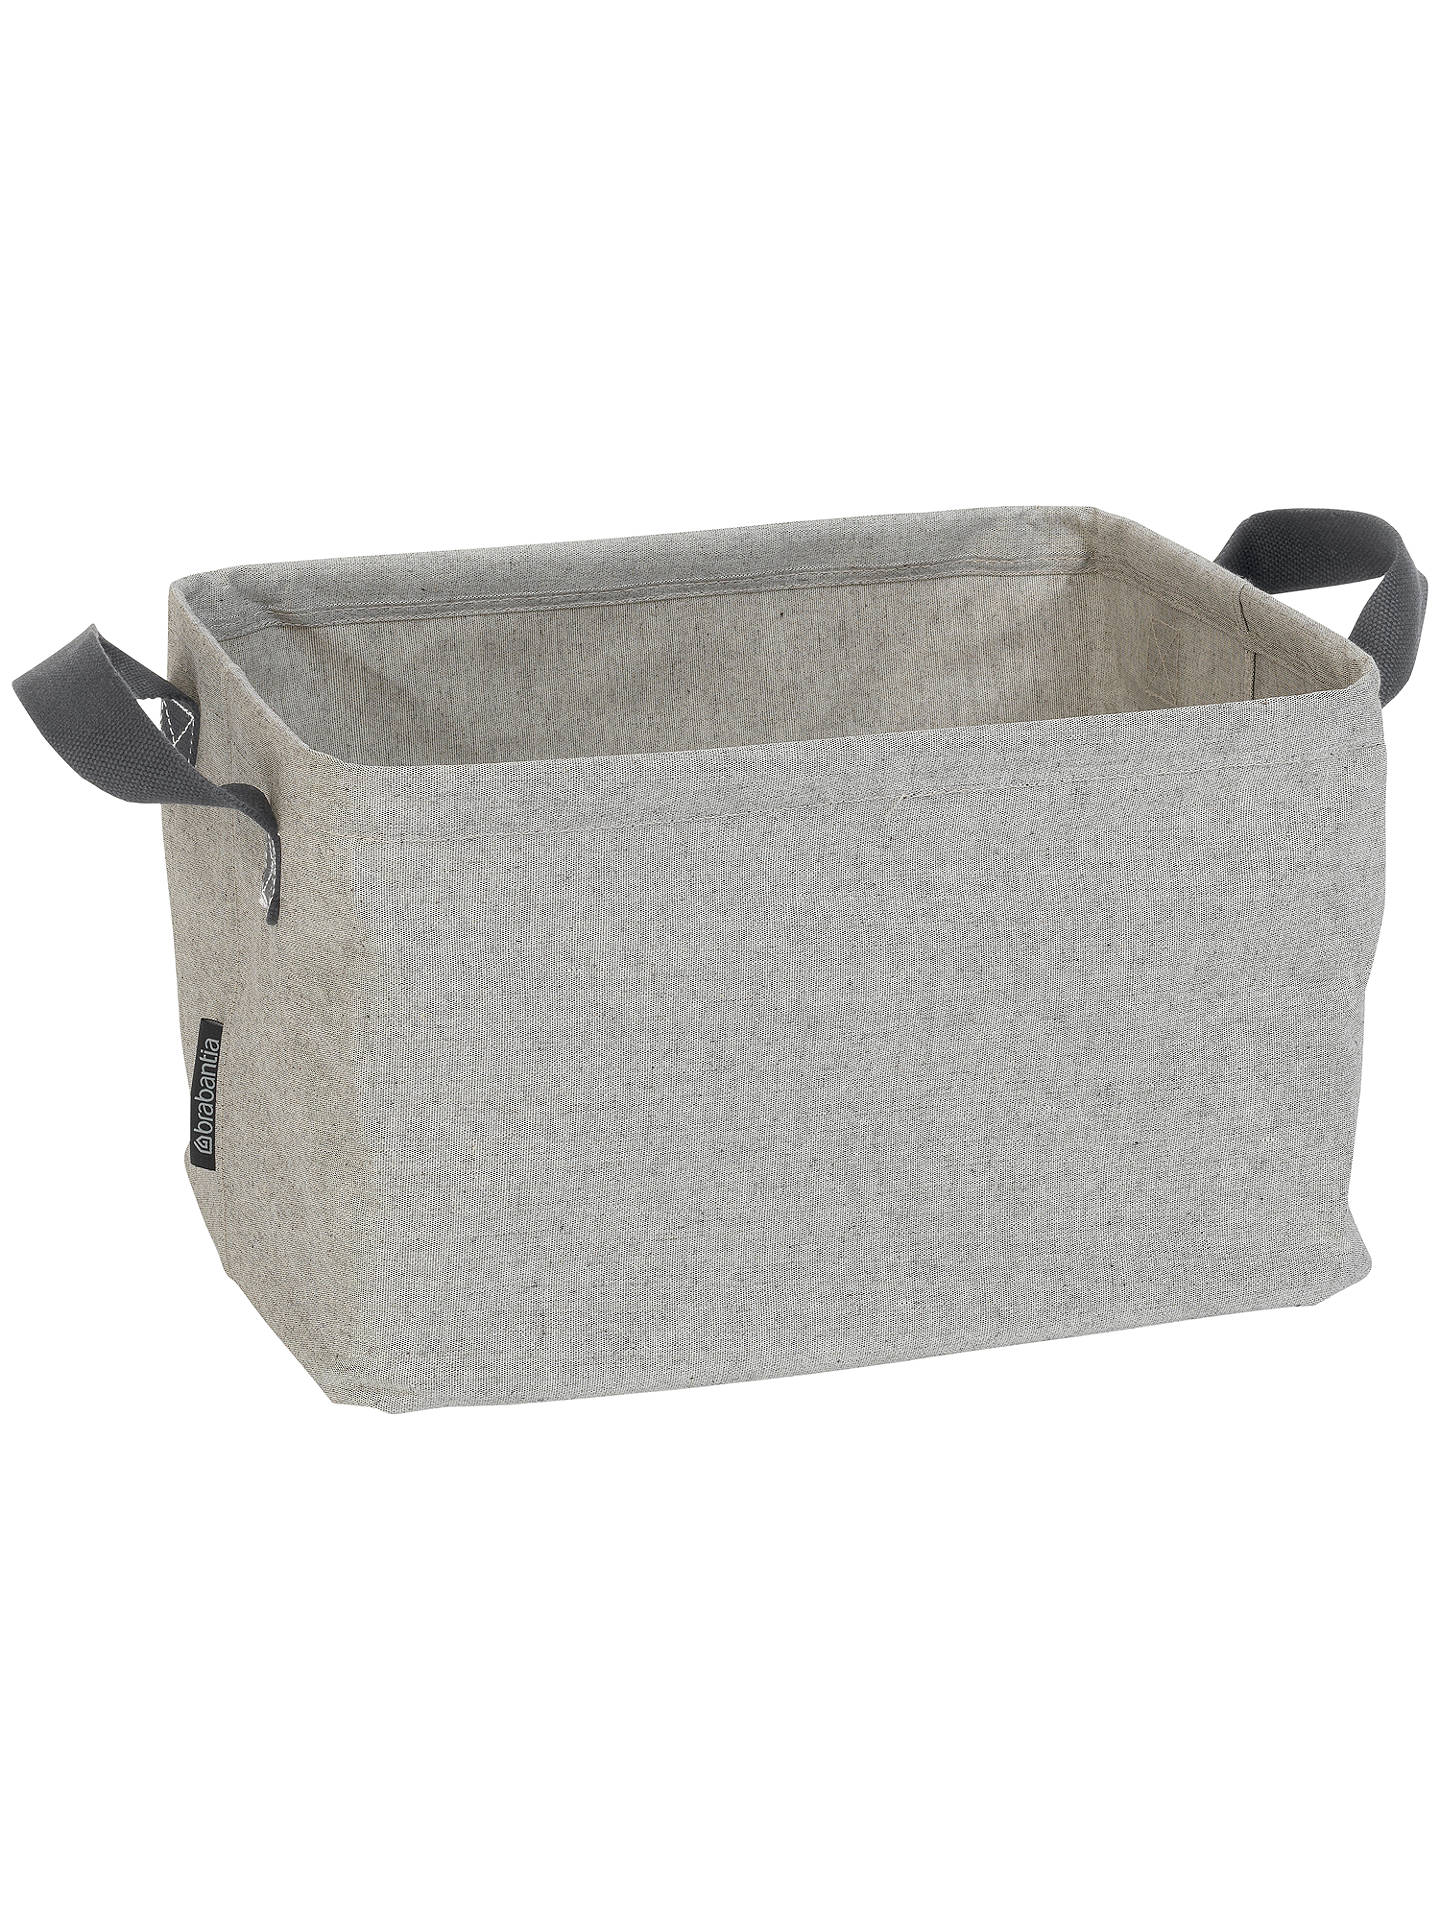 Buy Brabantia Foldable Laundry Basket, 35L Online at johnlewis.com